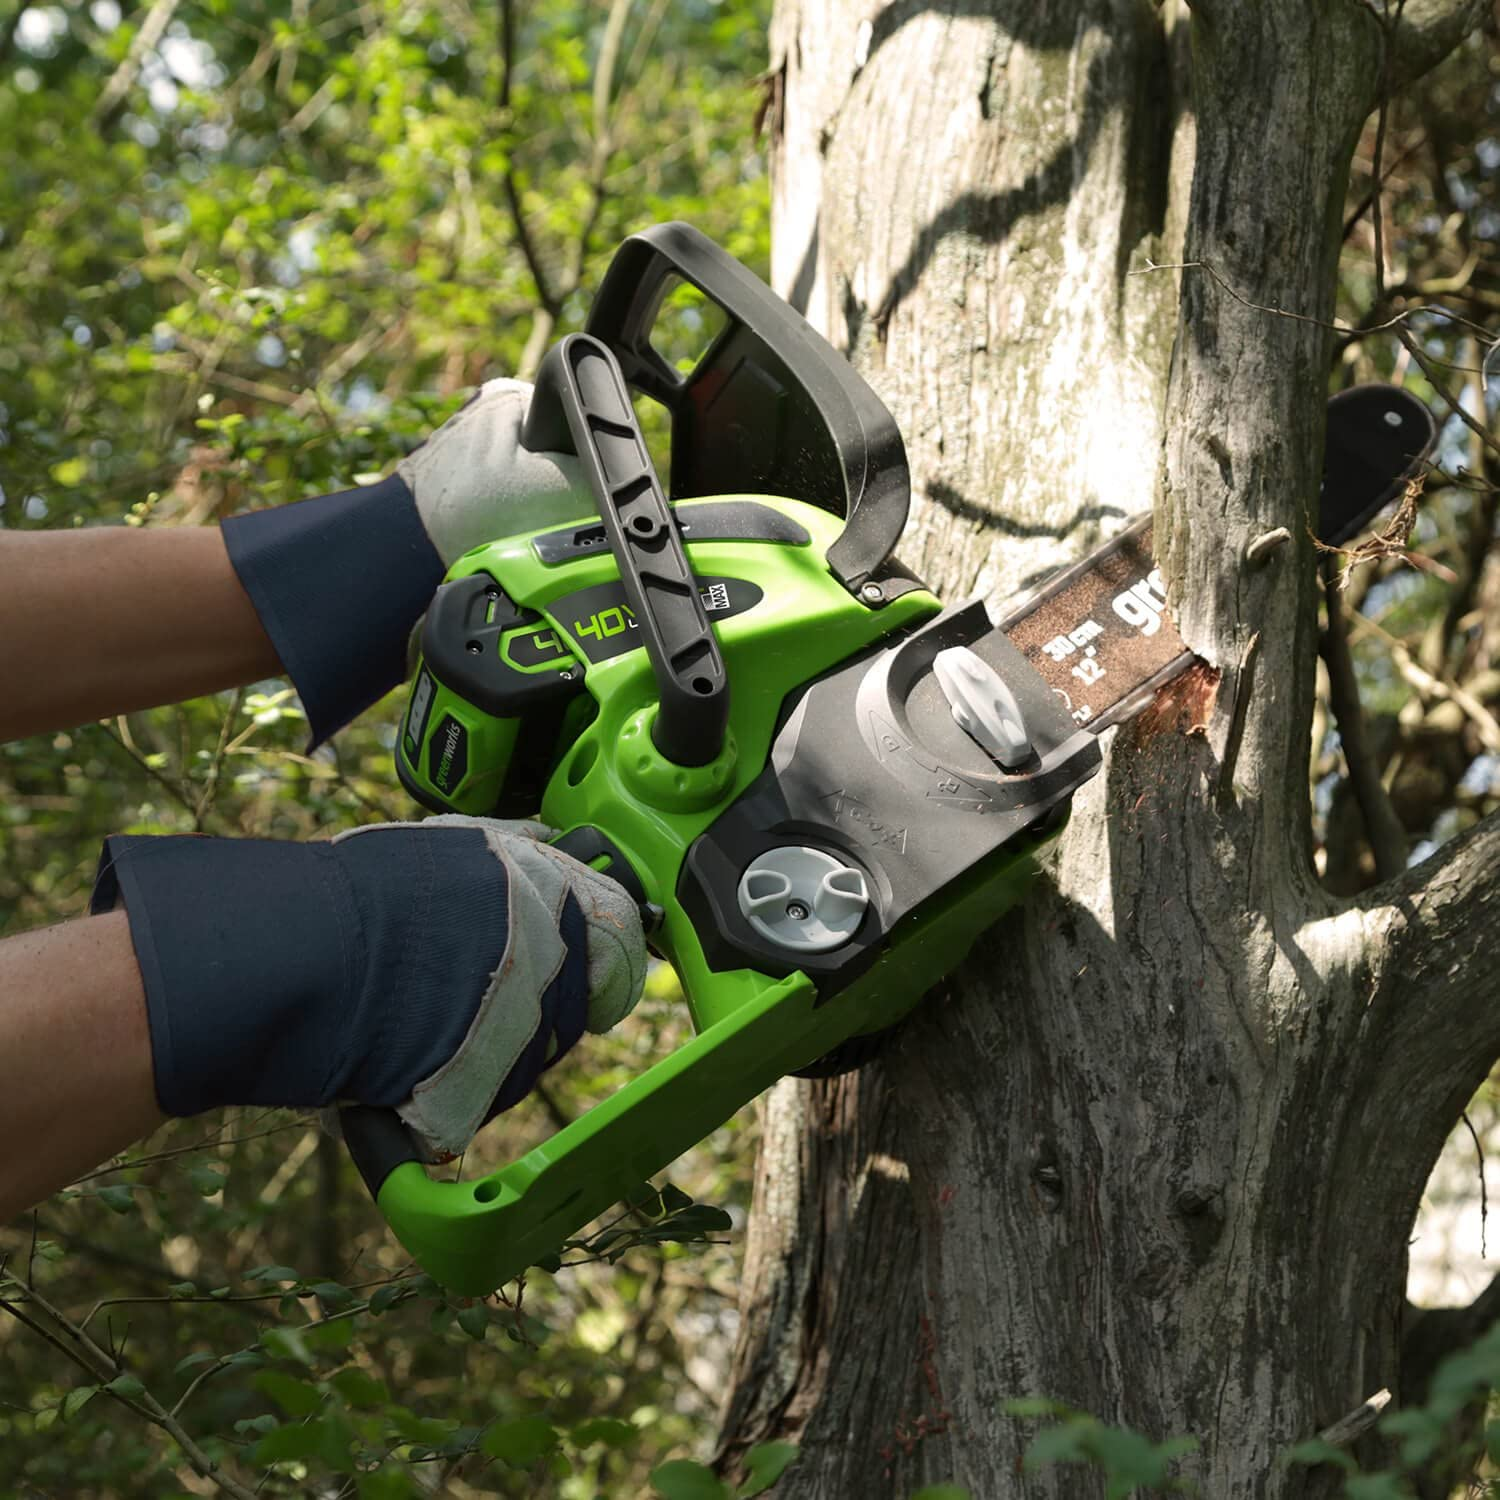 Best Cordless Chainsaw in 2021: Reviews & Buying Guide 5